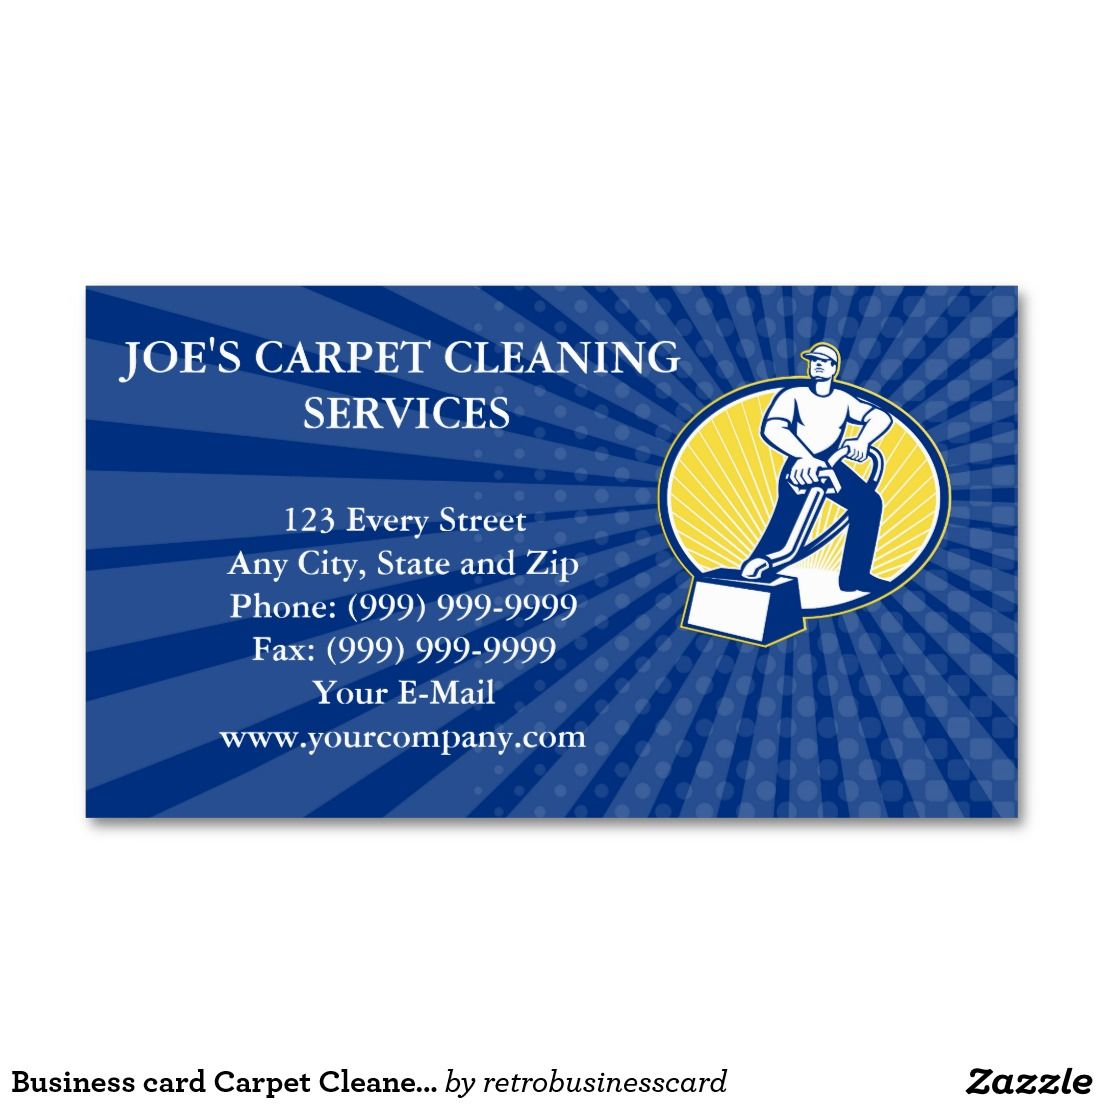 Business Card Carpet Cleaner Vacuum Cleaning Machi Zazzle Com Cleaning Business Cards Carpet Cleaner Vacuum Zazzle Business Cards